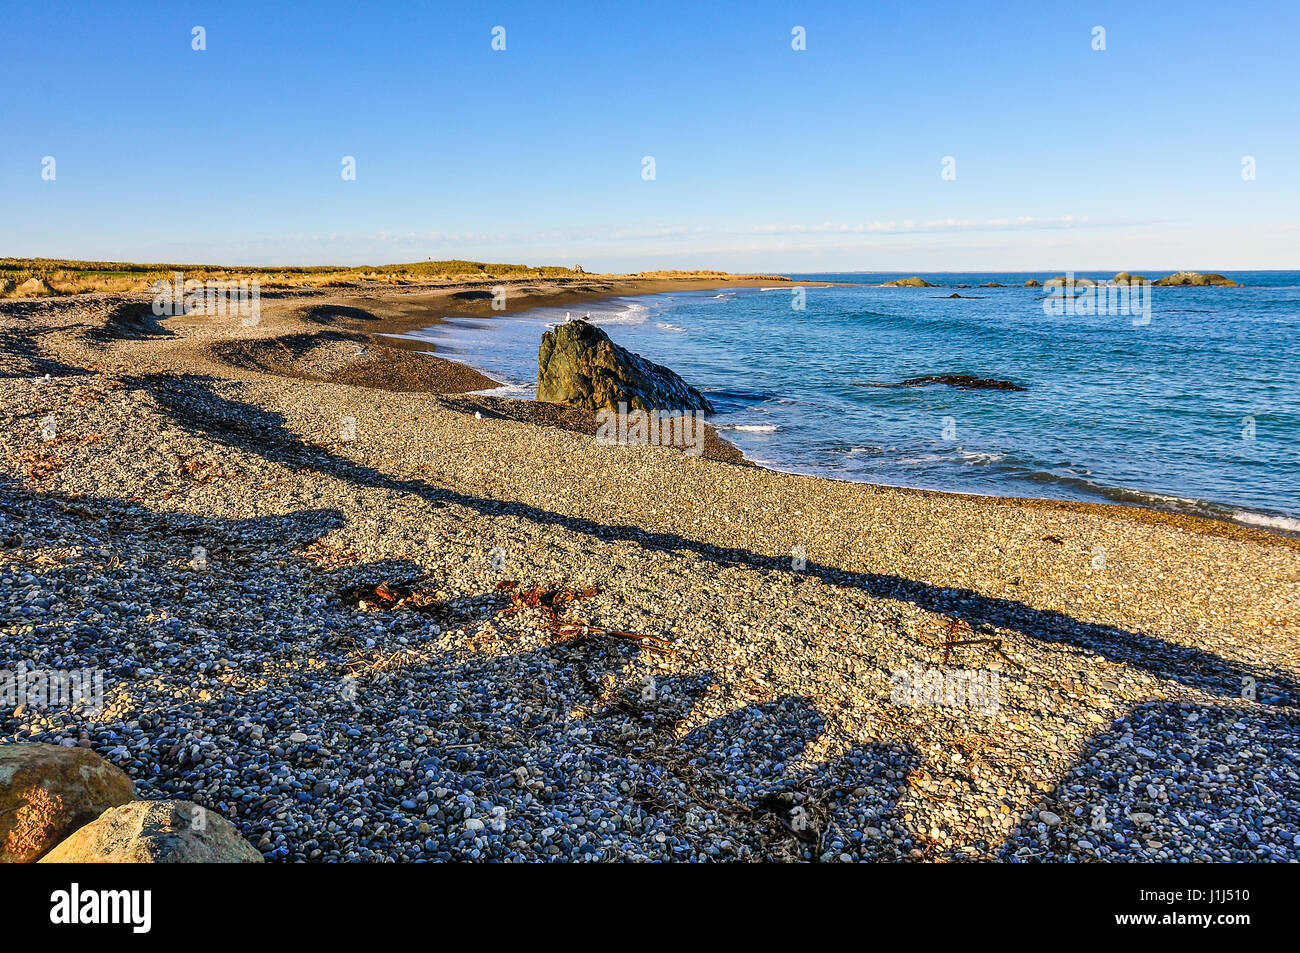 Empty beach in the Southern Scenic Route, New Zealand - Stock Image